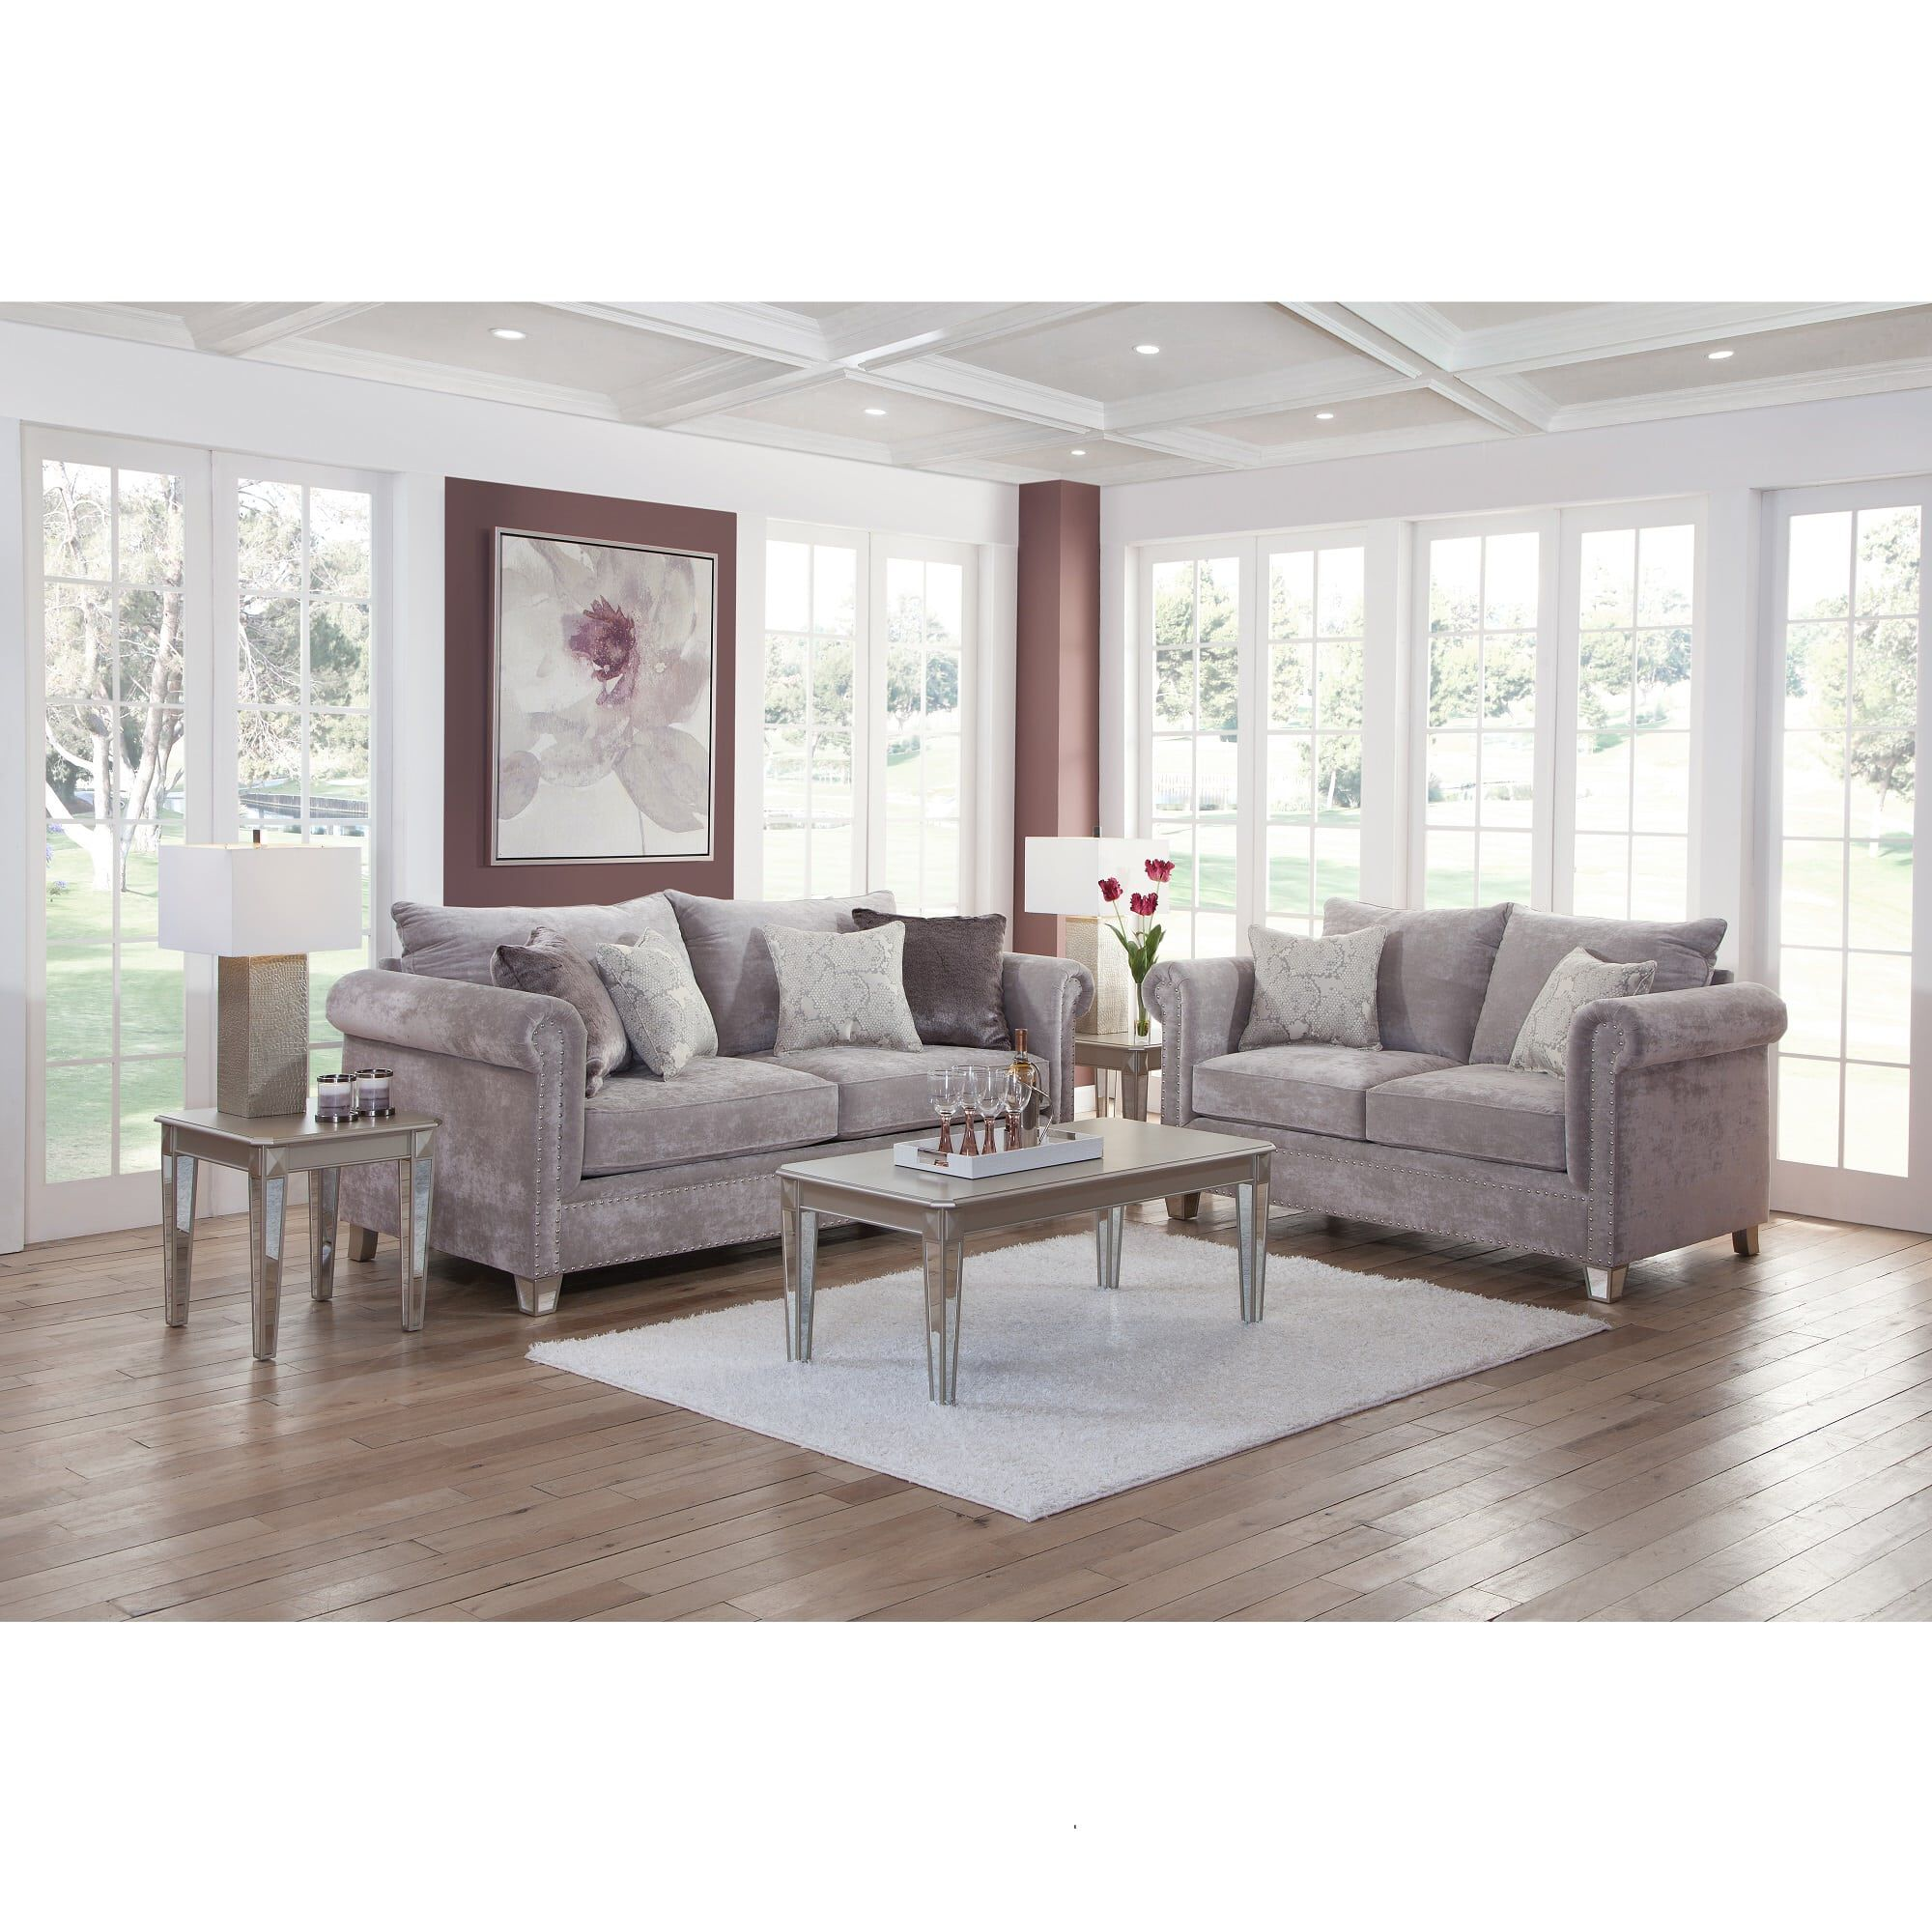 2 Piece Hollywood Living Room Collection